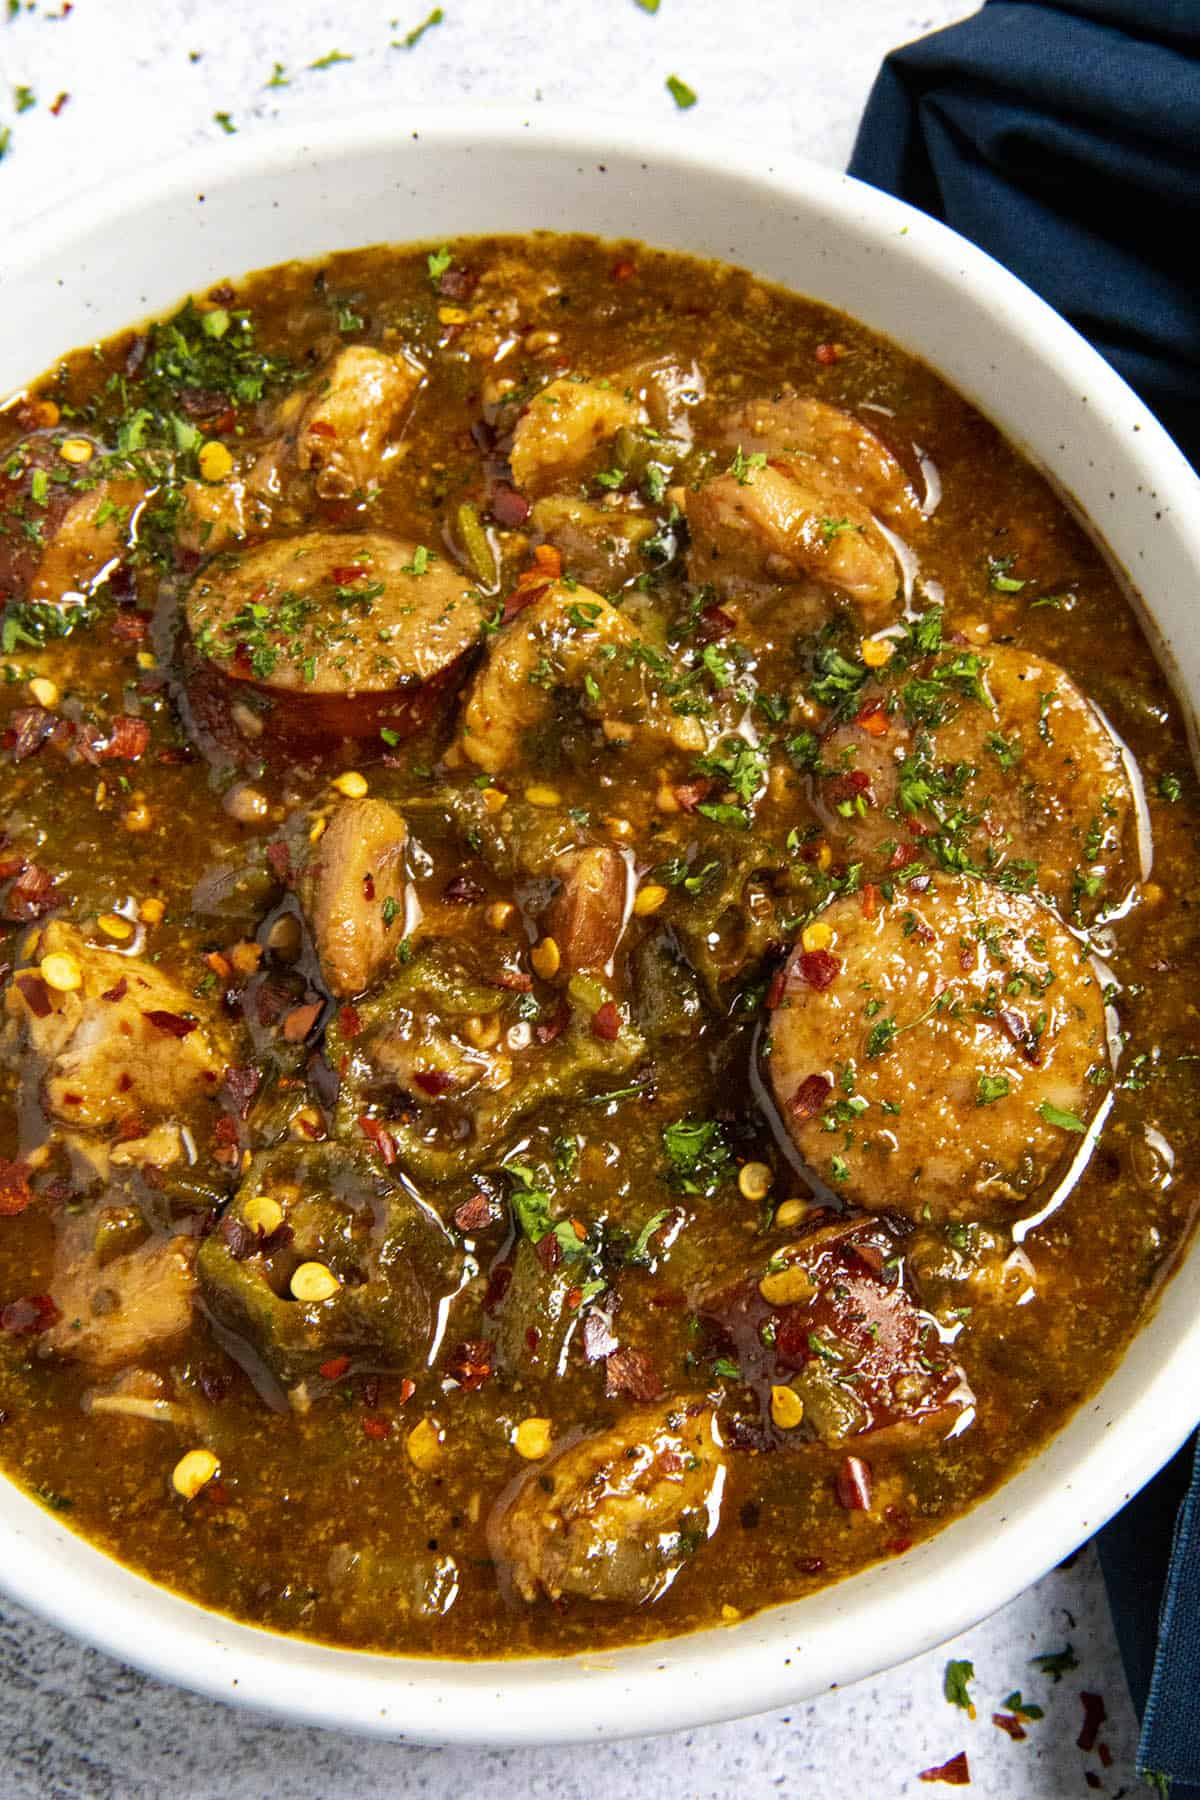 Cajun Chicken and Sausage Gumbo Recipe